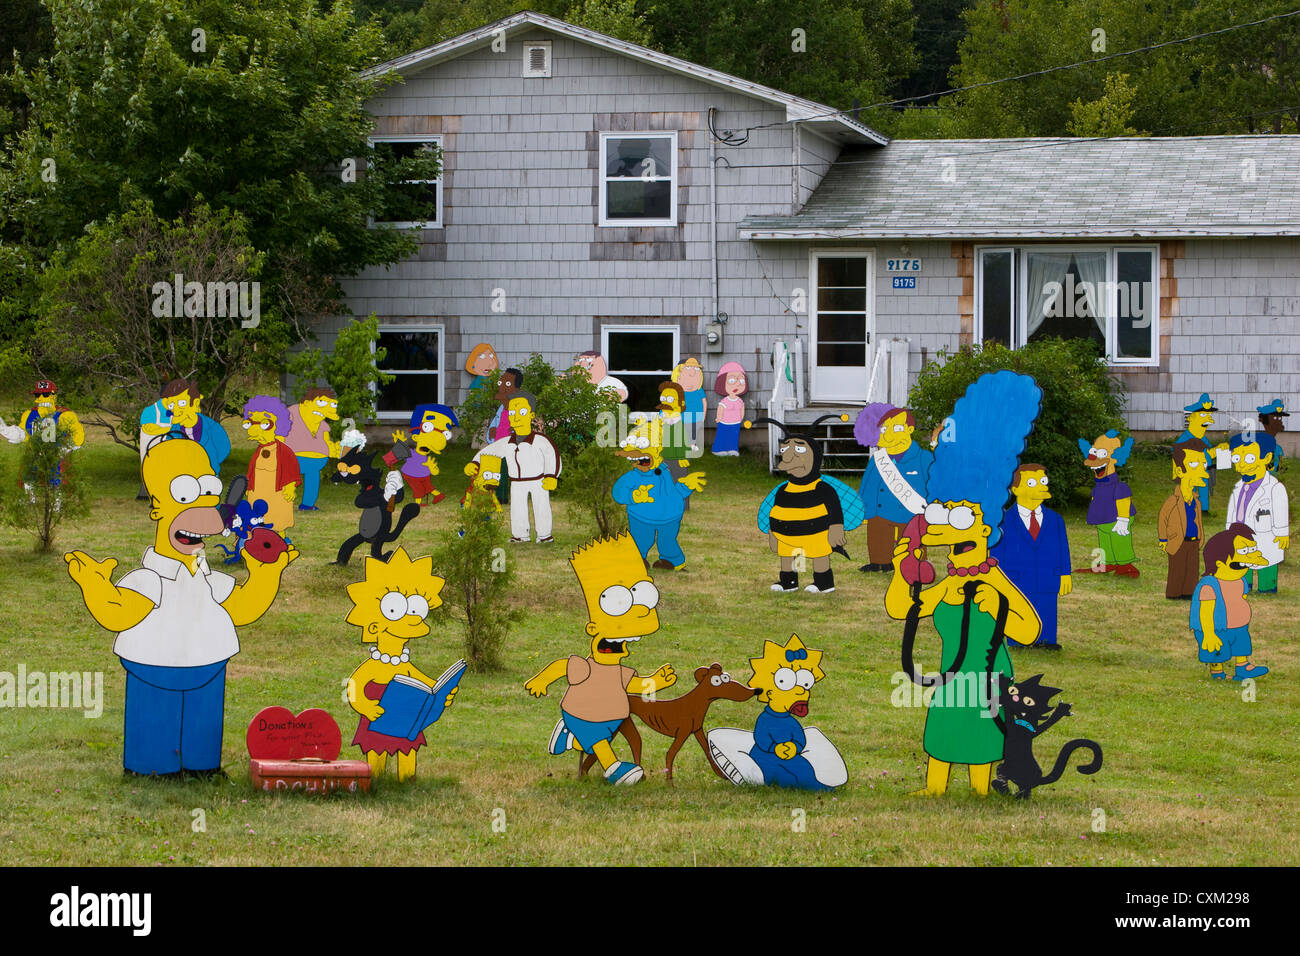 The Simpsons family, cartoon character cutouts in a garden - Stock Image